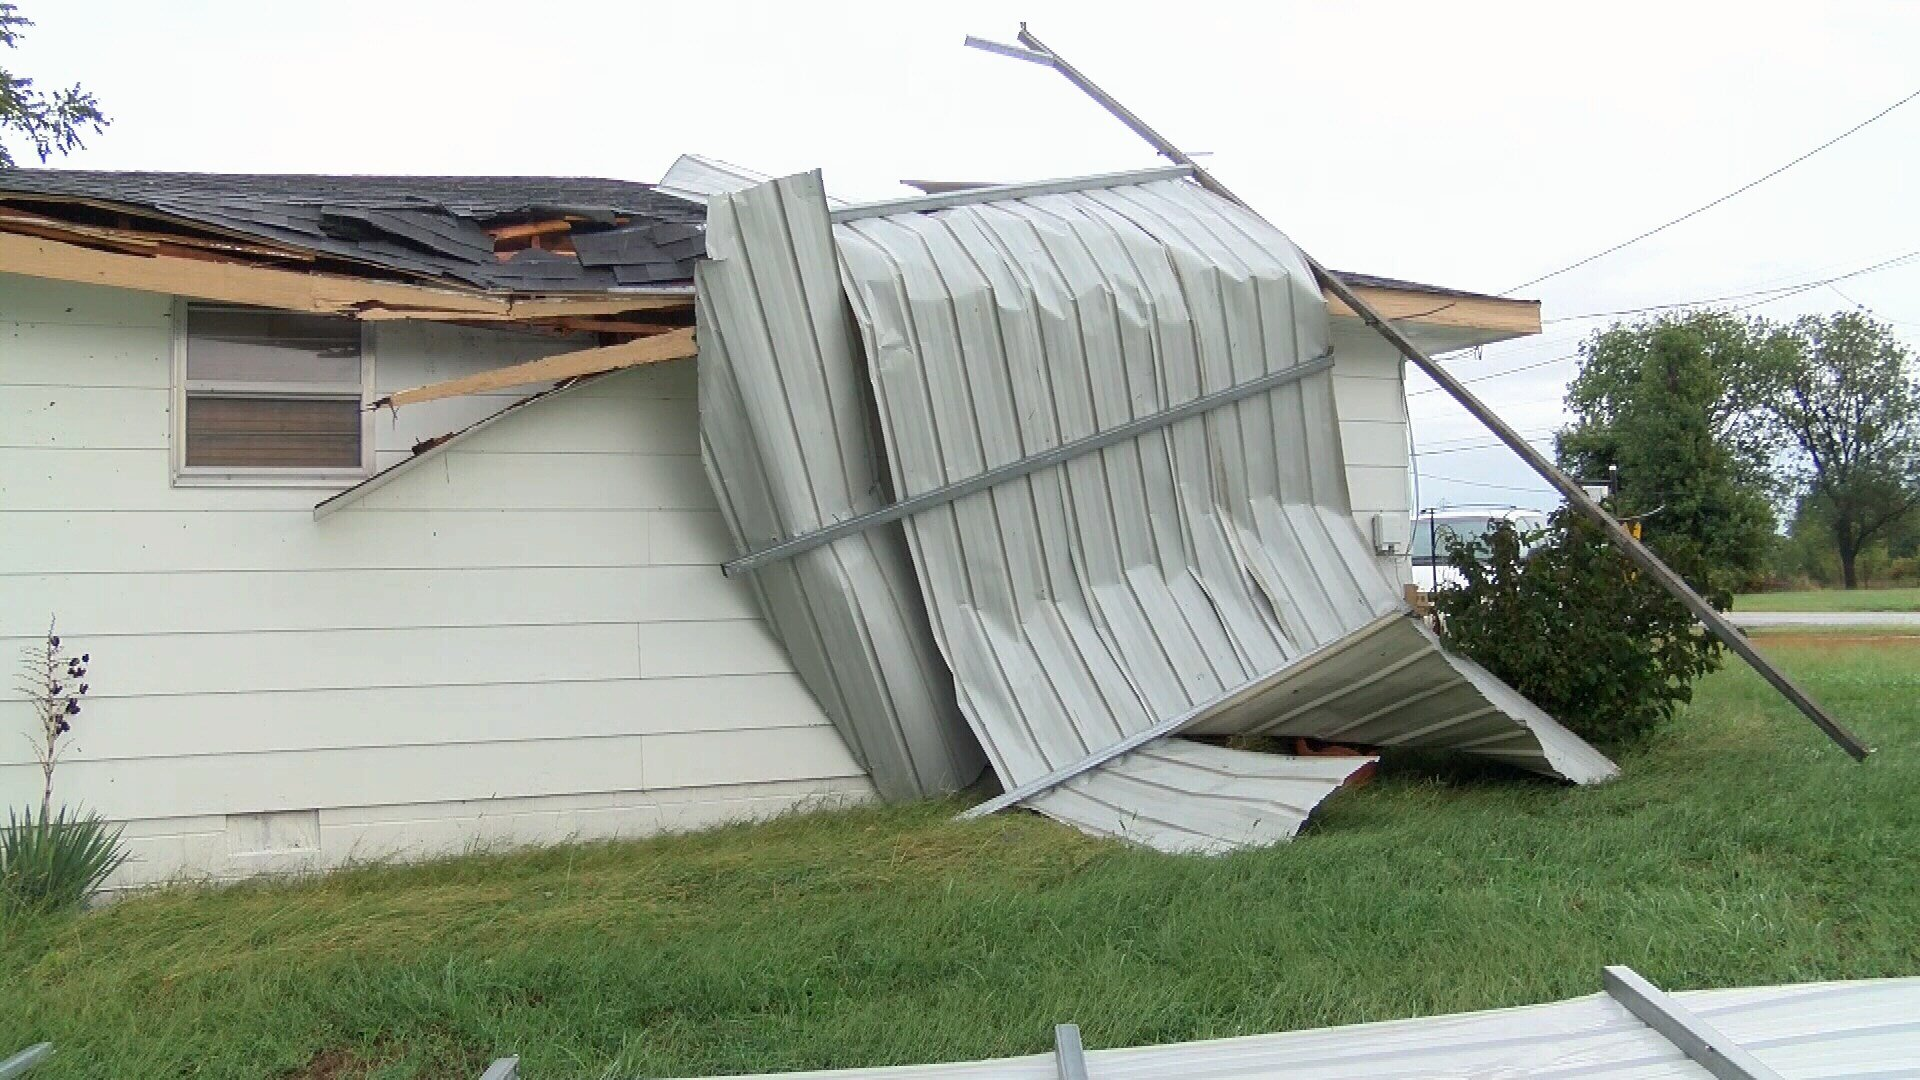 Storm damage in Joplin, MO (Oct. 9, 2018)